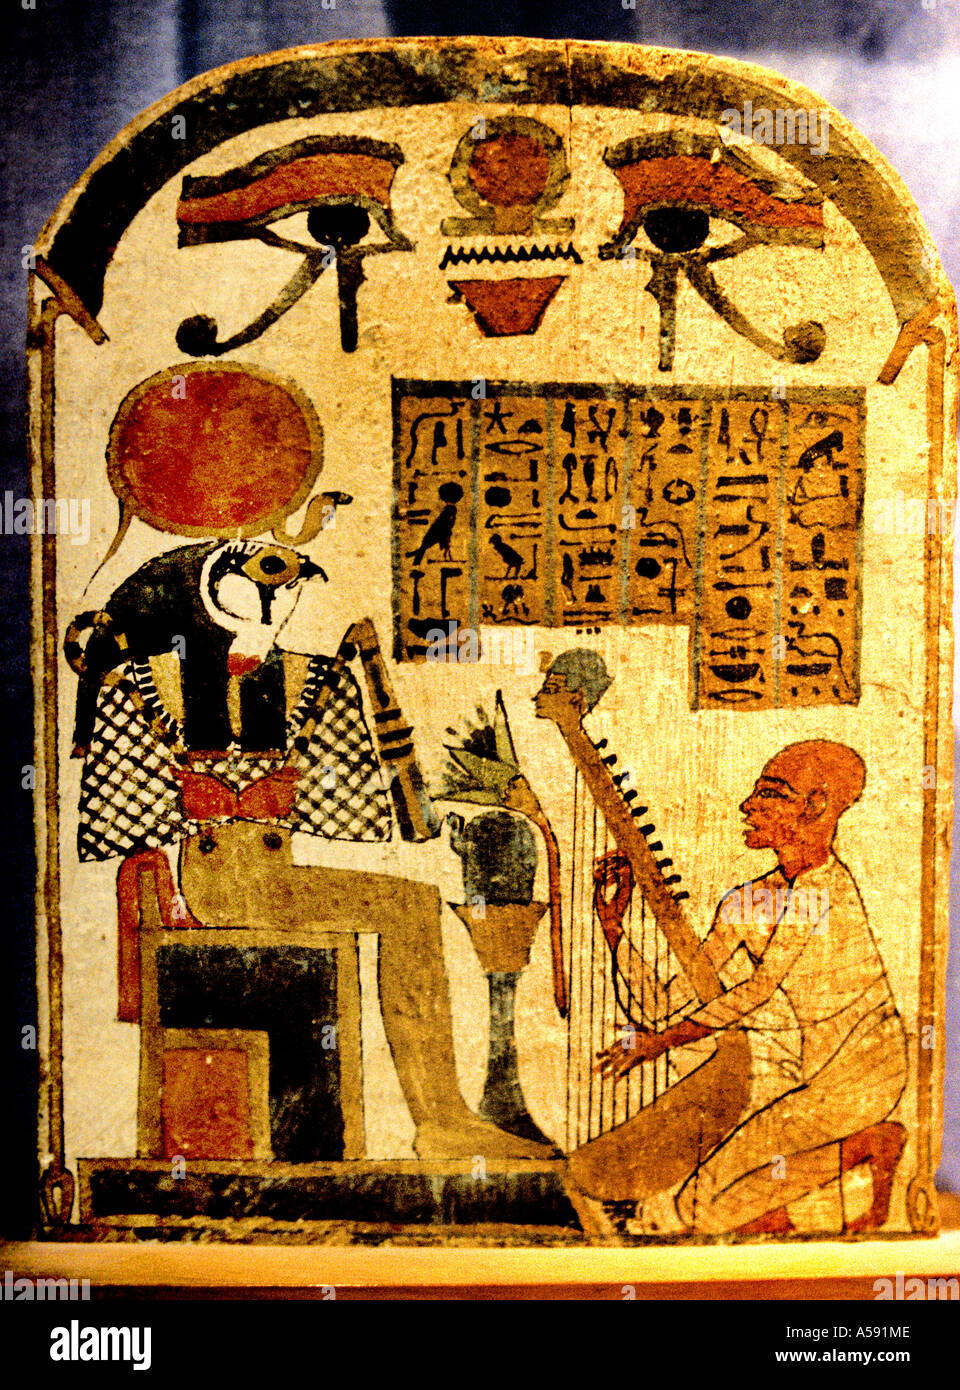 Pharaoh art images galleries with a bite for Egyptian mural paintings